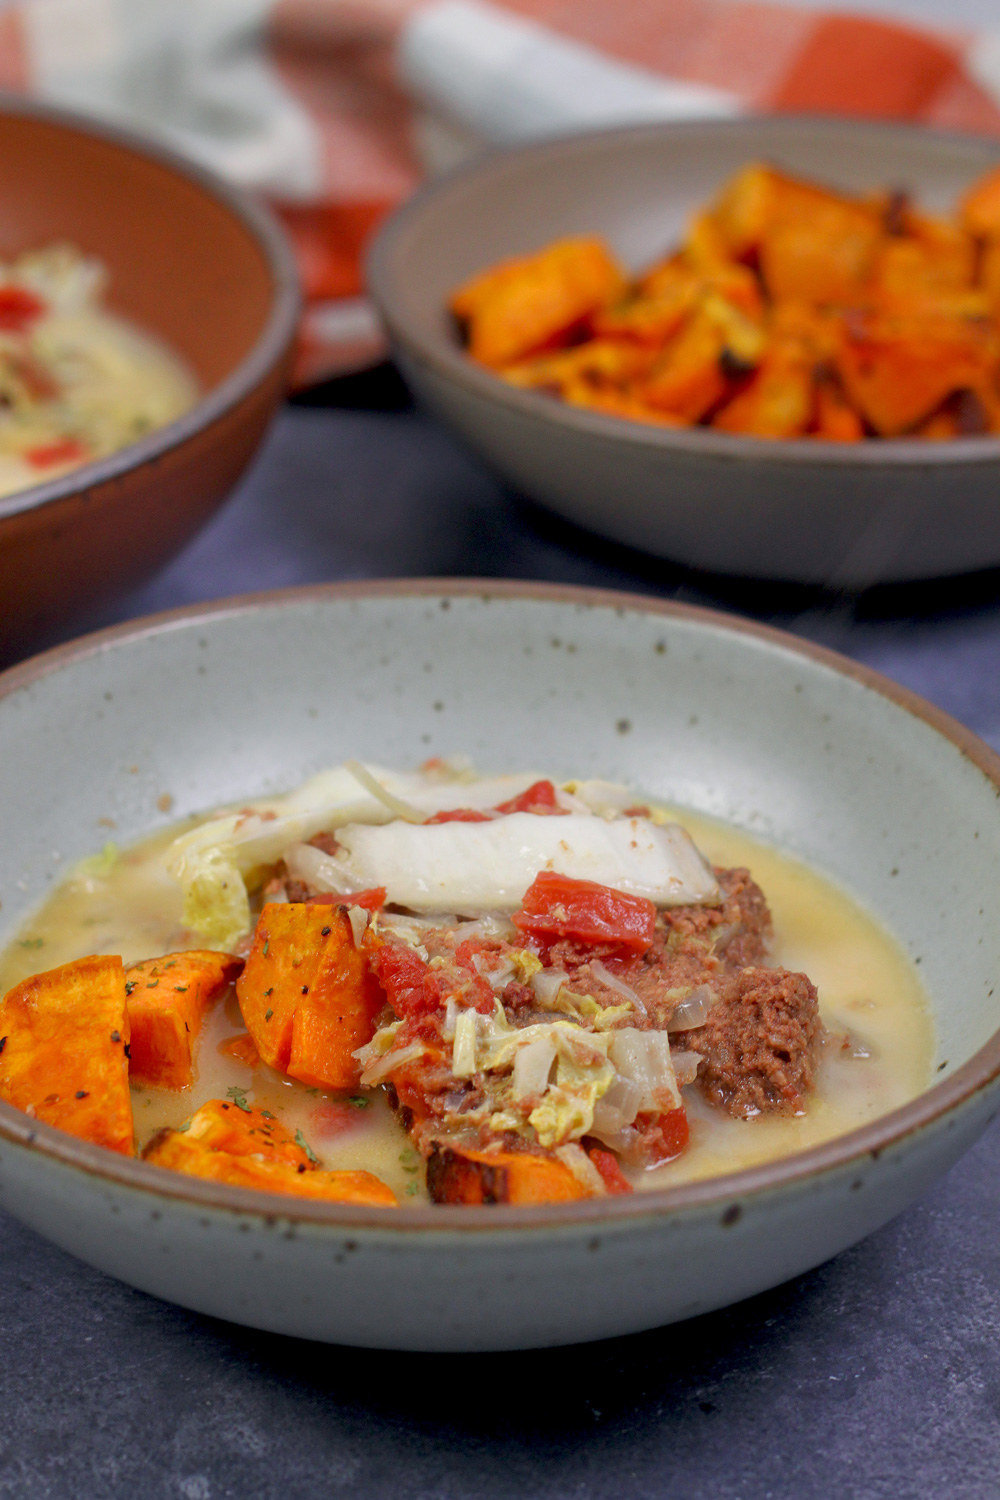 A bowl filled with corned beef and a coconut milk soup